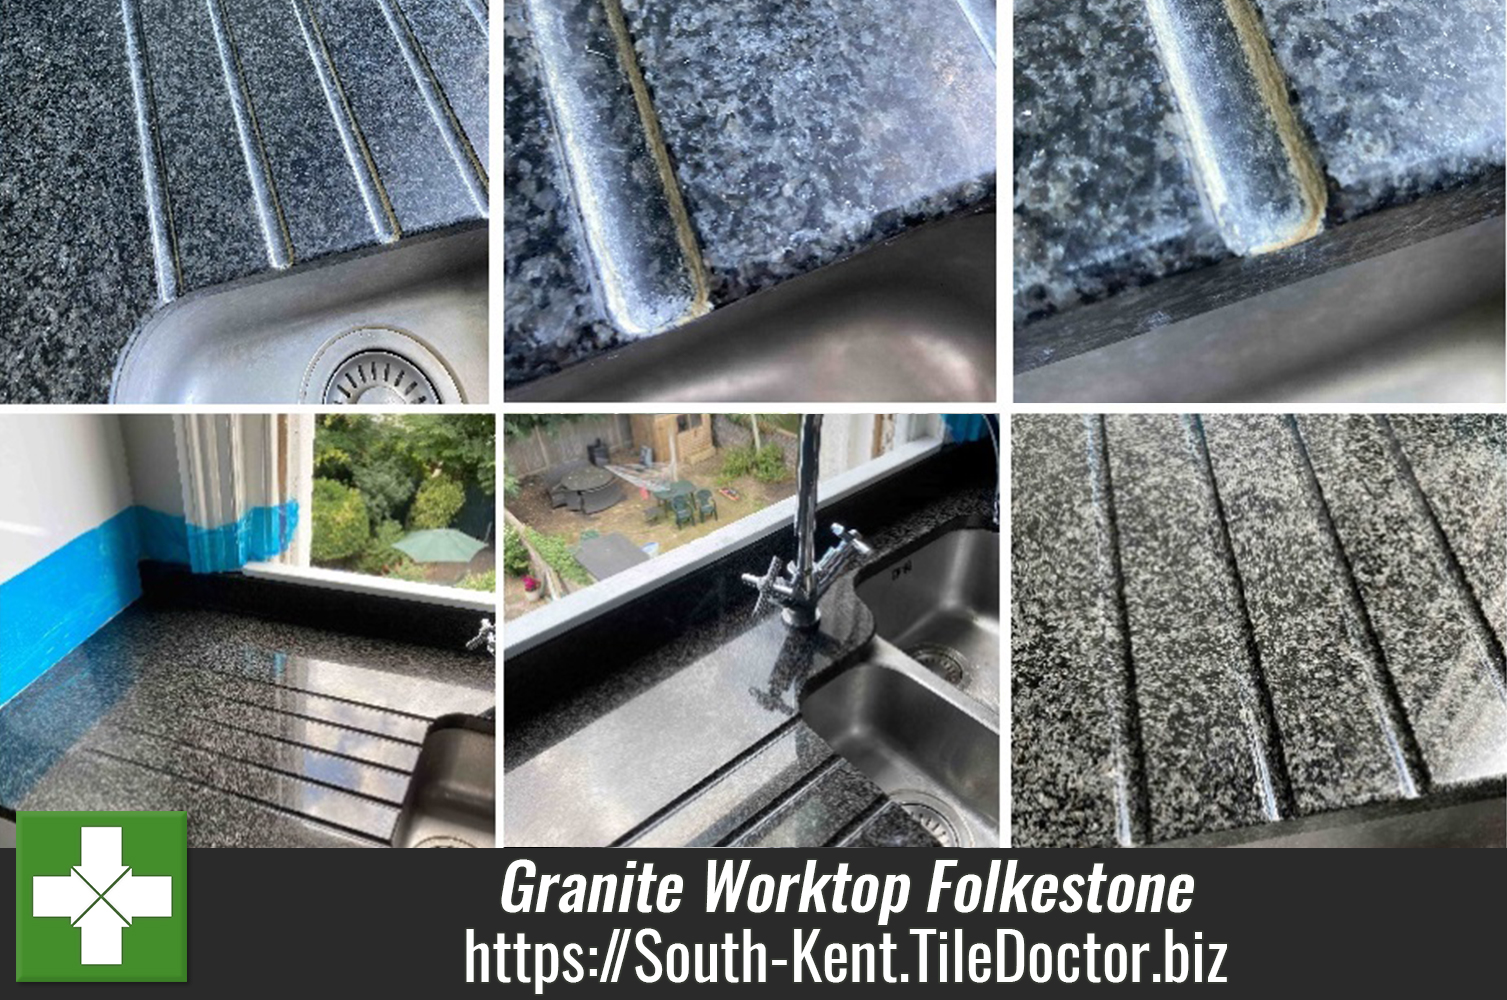 Removing Limescale from Granite Worktops in a Folkestone Kitchen